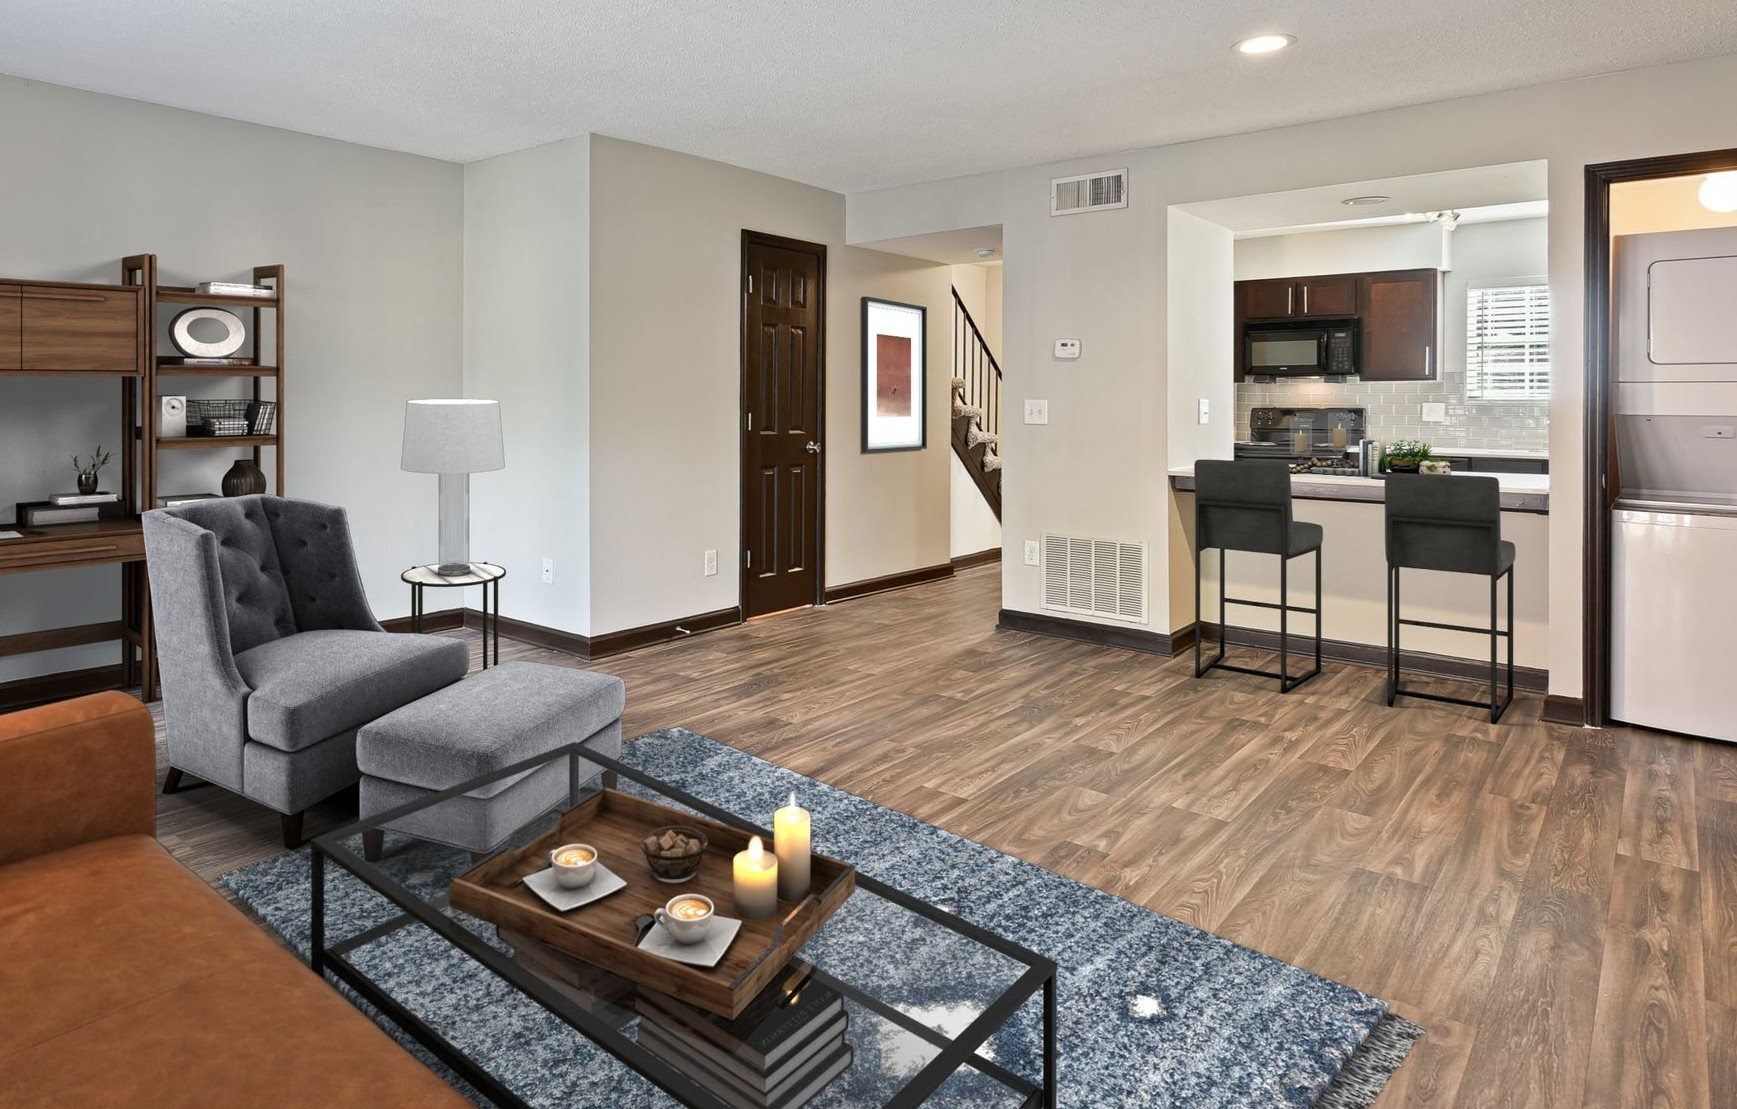 Living Rooms at Artesian East Village in Atlanta